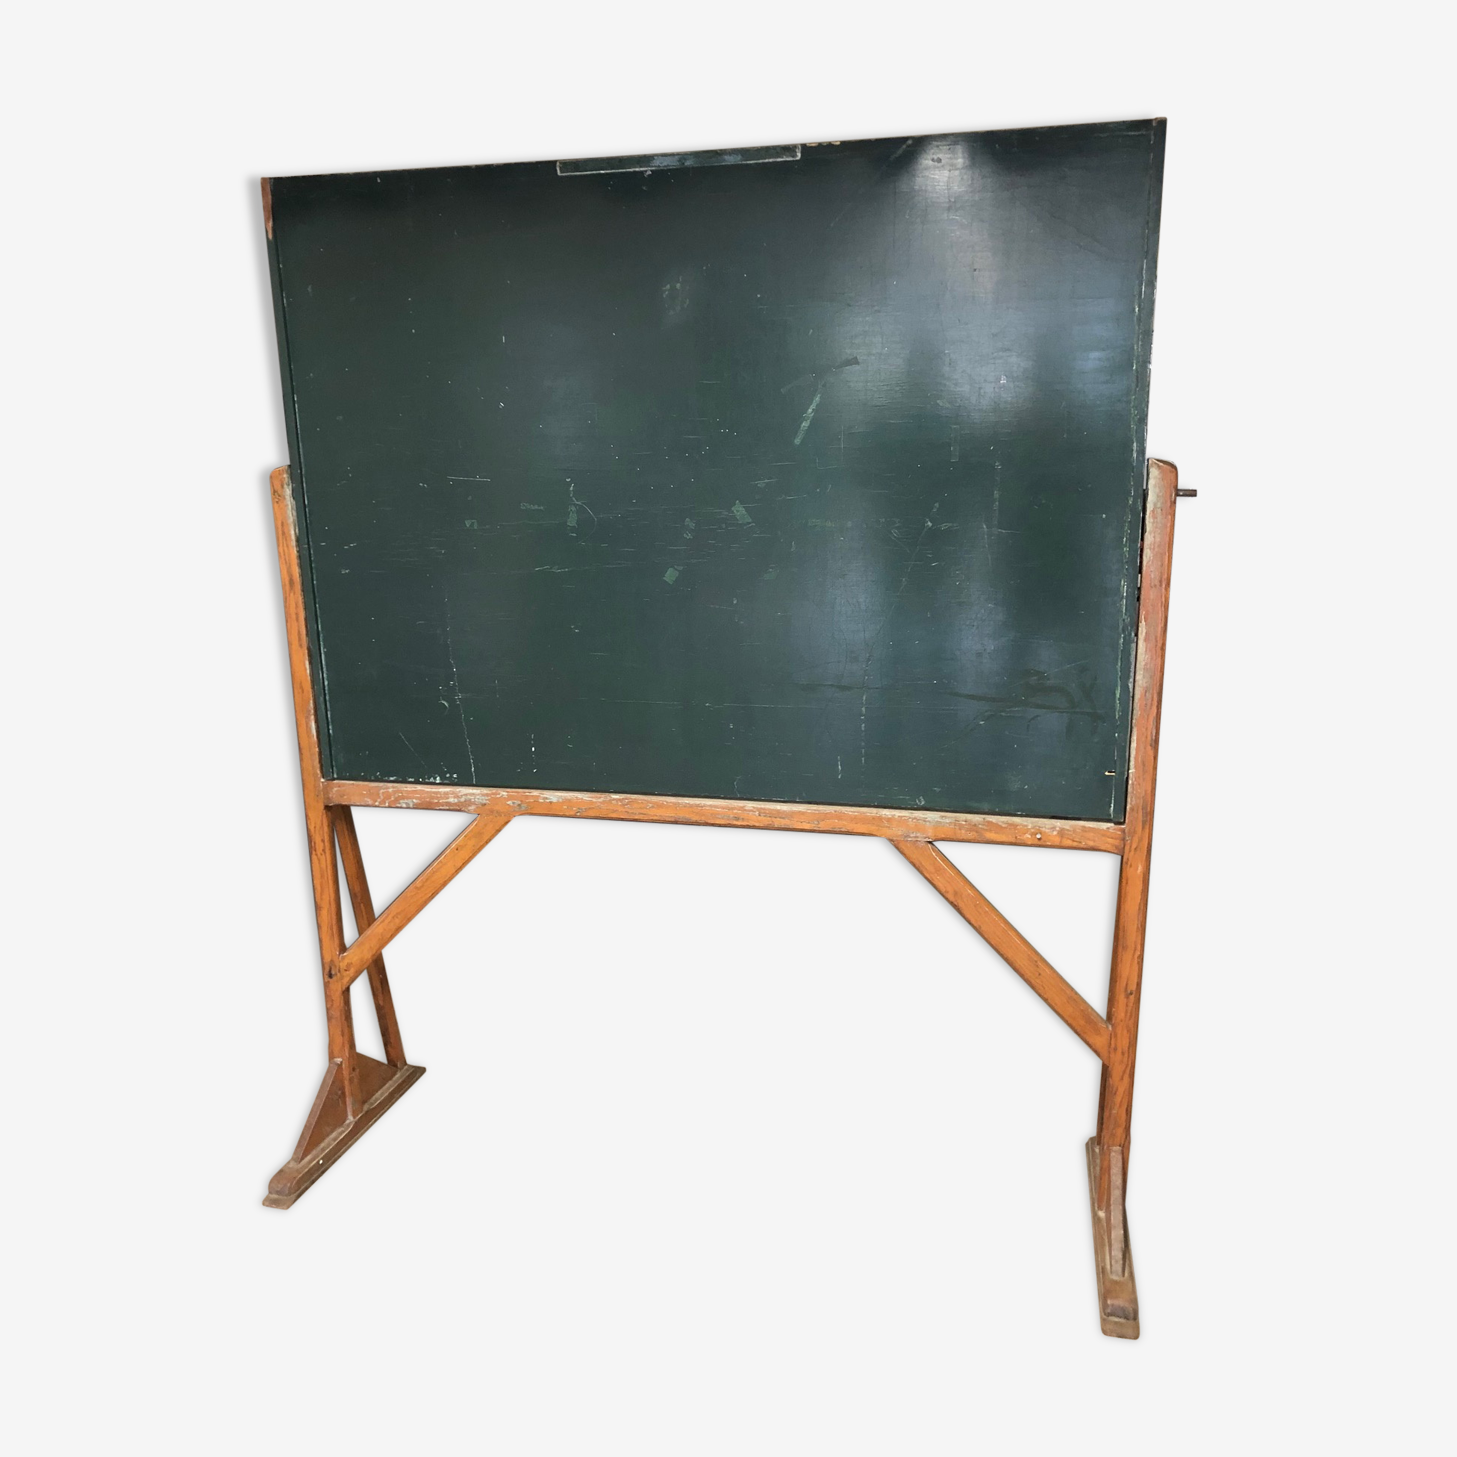 Old table on year 50 wooden frame